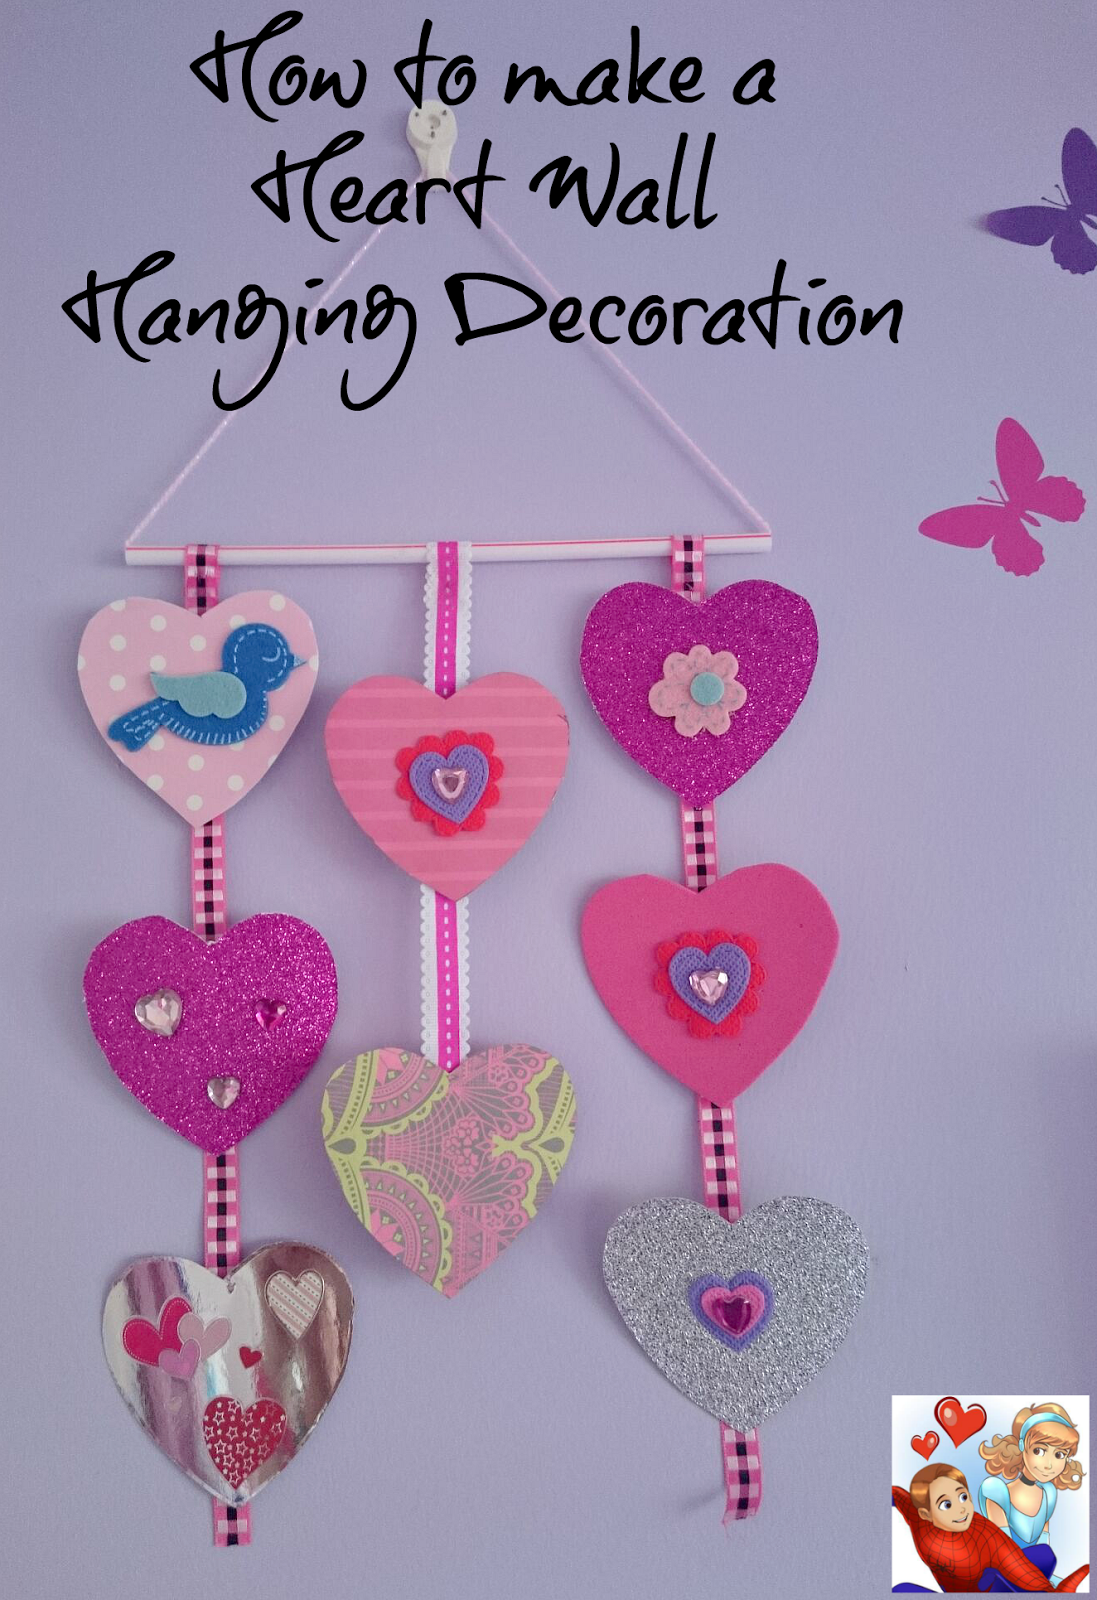 How To Make A Heart Wall Hanging Decoration Heart Mobile Heart And